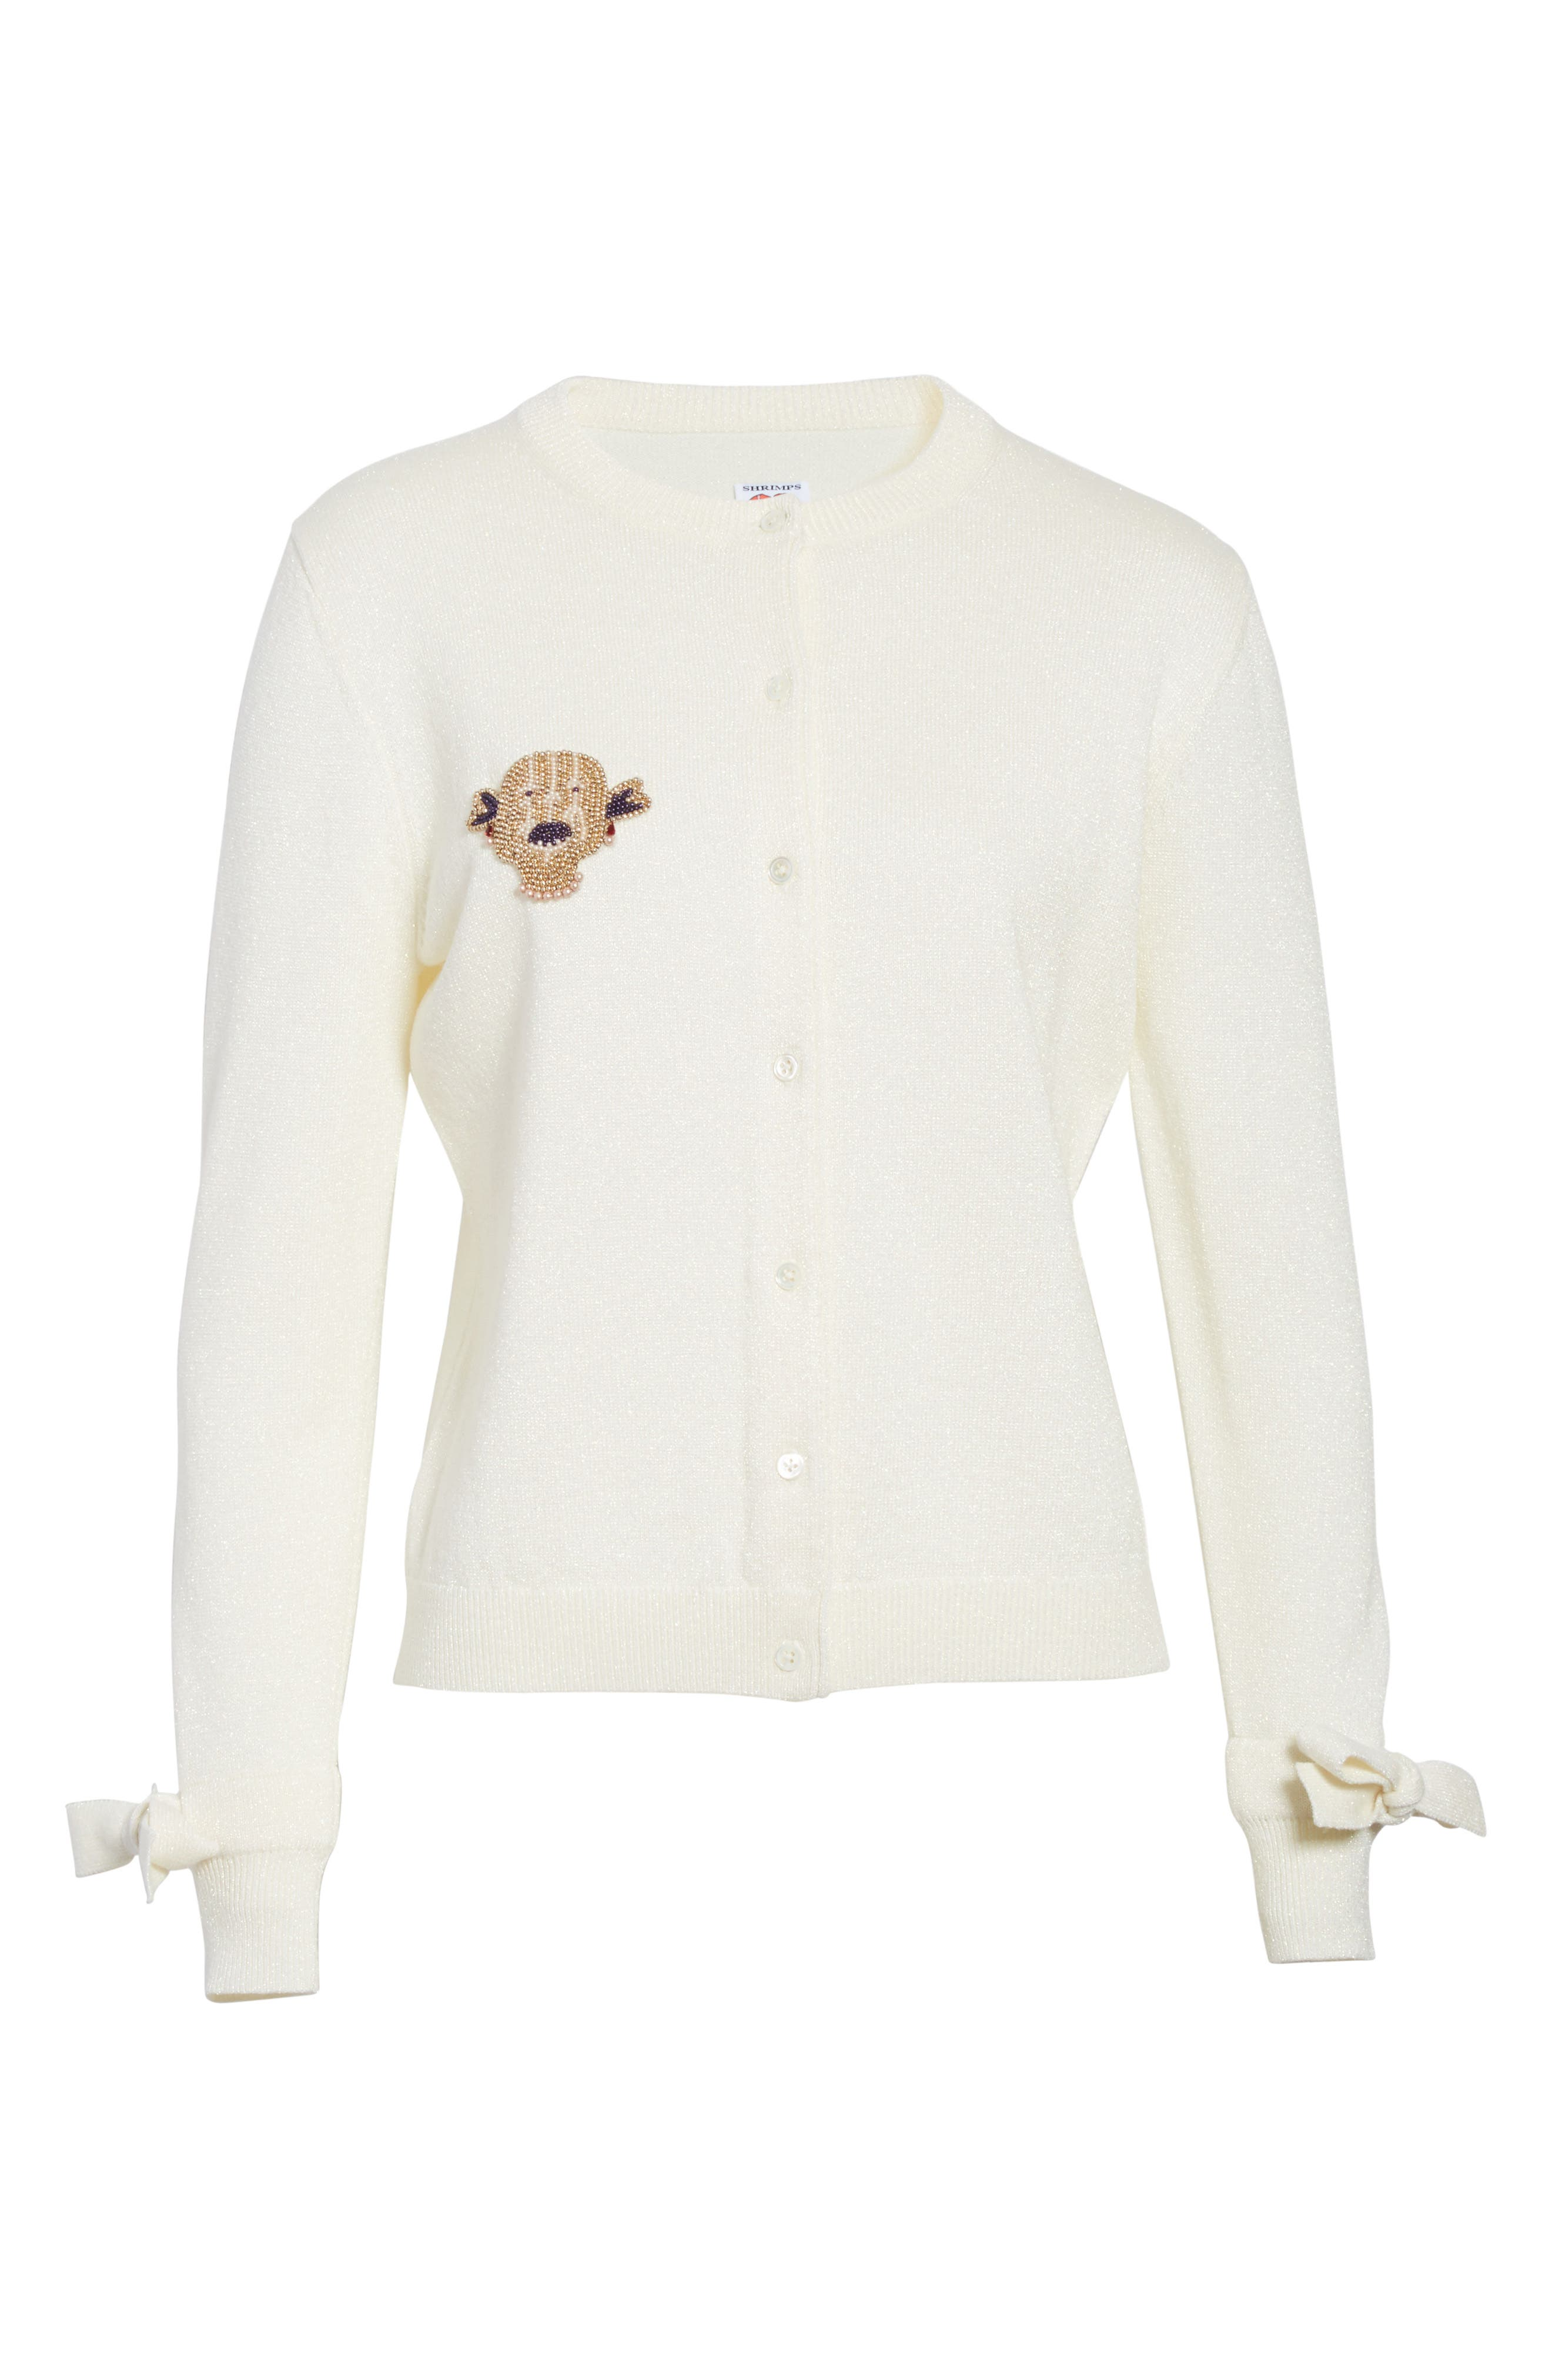 Lorna Embellished Bow Cuff Cardigan,                             Alternate thumbnail 6, color,                             Cream Lurex